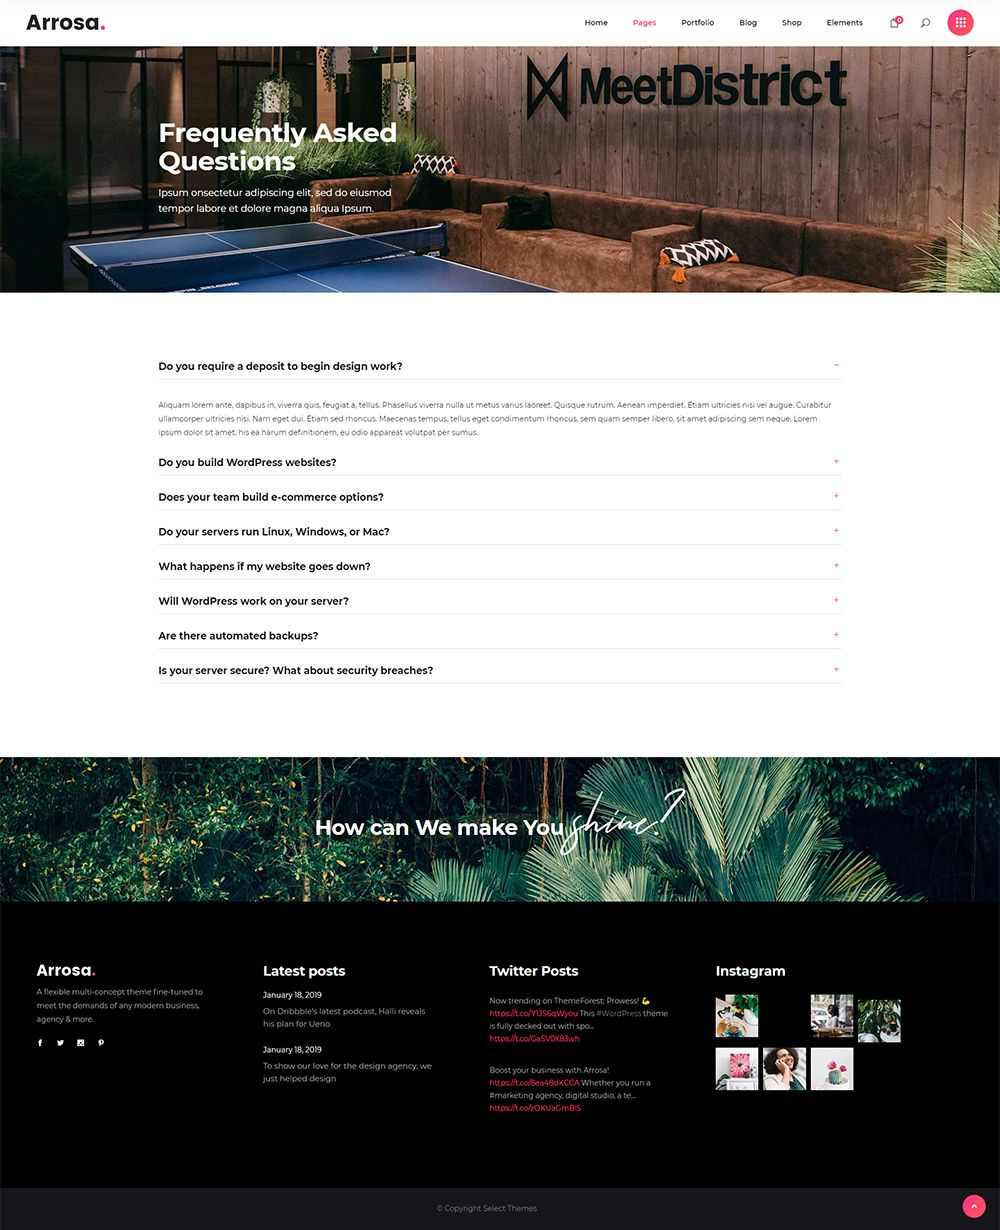 Import the full Arrosa WordPress theme demo and have your business website up and ready in no time. #wordpress #theme #design #webdesign #uxdesign #uidesign #creative #portfolio #designer #freelancer #creativeagency #designstudio #marketingagency #colorful #modern